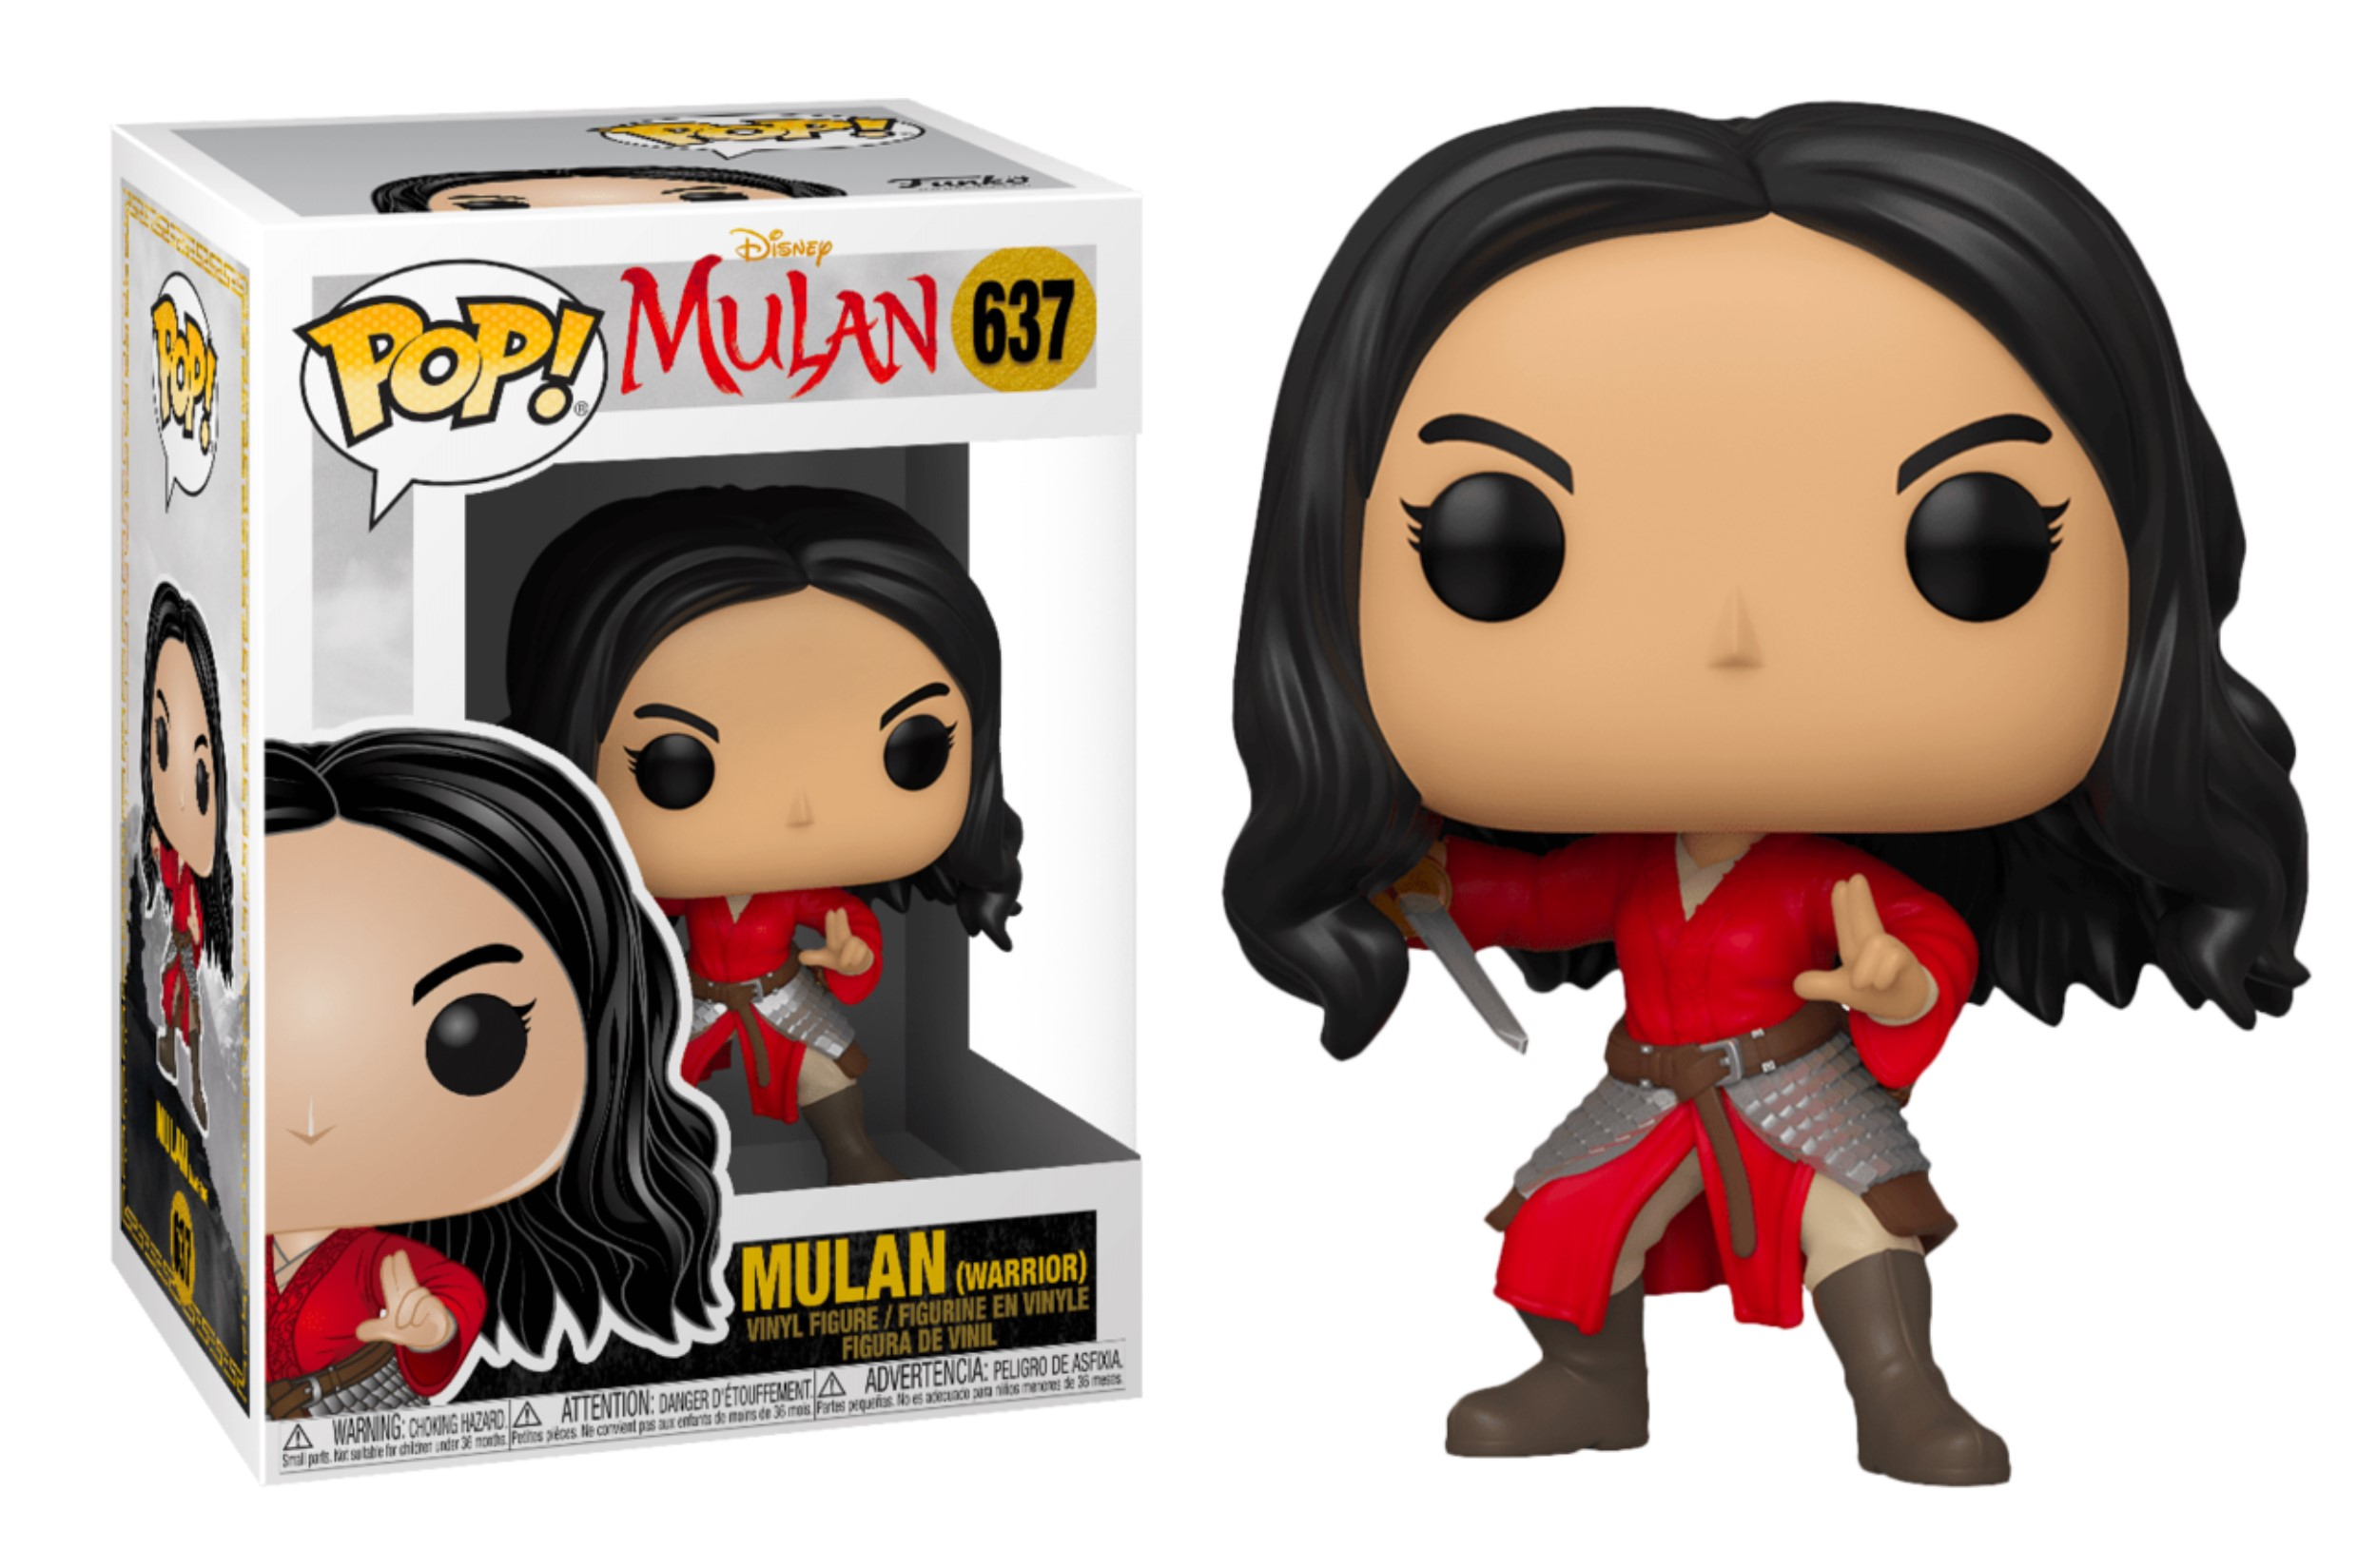 FUNKO POP MULAN WARRIOR #637 MULAN DISNEY LIU YIFEI